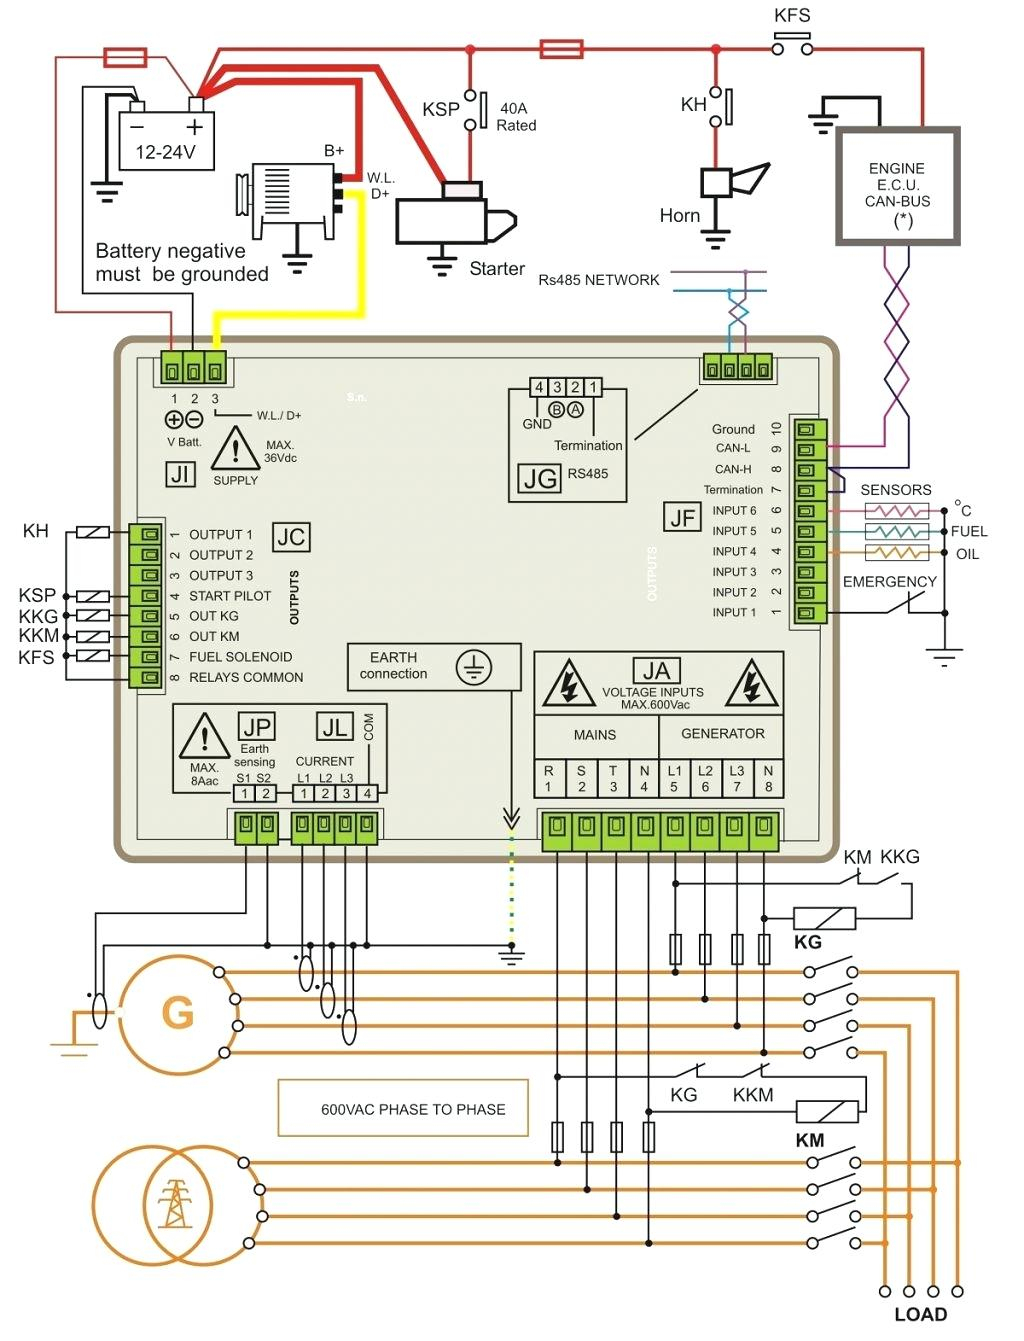 Home Electrical Wiring Sizes | Wiring Library - Home Wiring Diagram Software